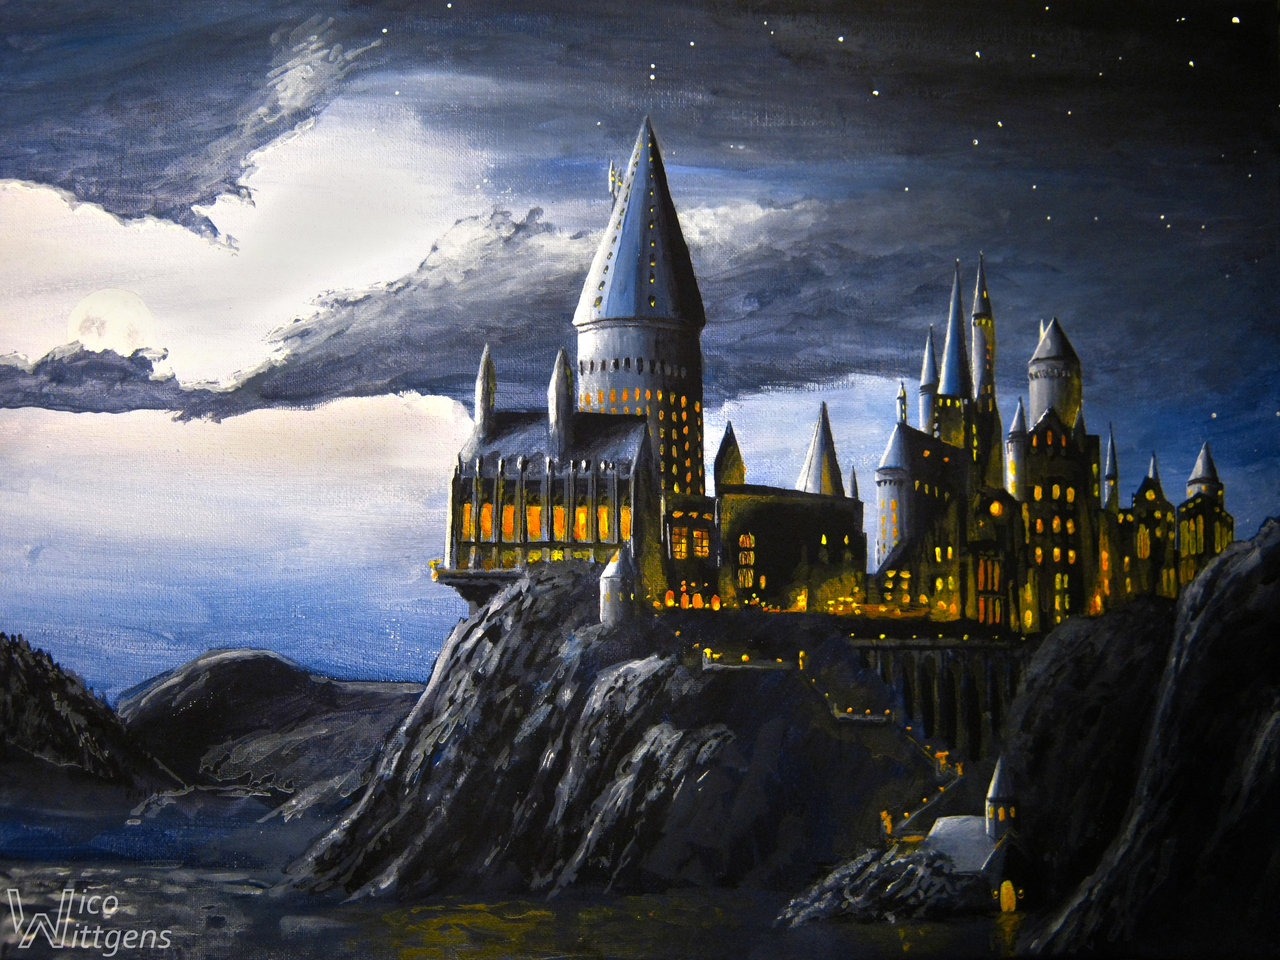 Hogwarts Castle Wallpaper Hogwarts at night by nicow92 1280x960